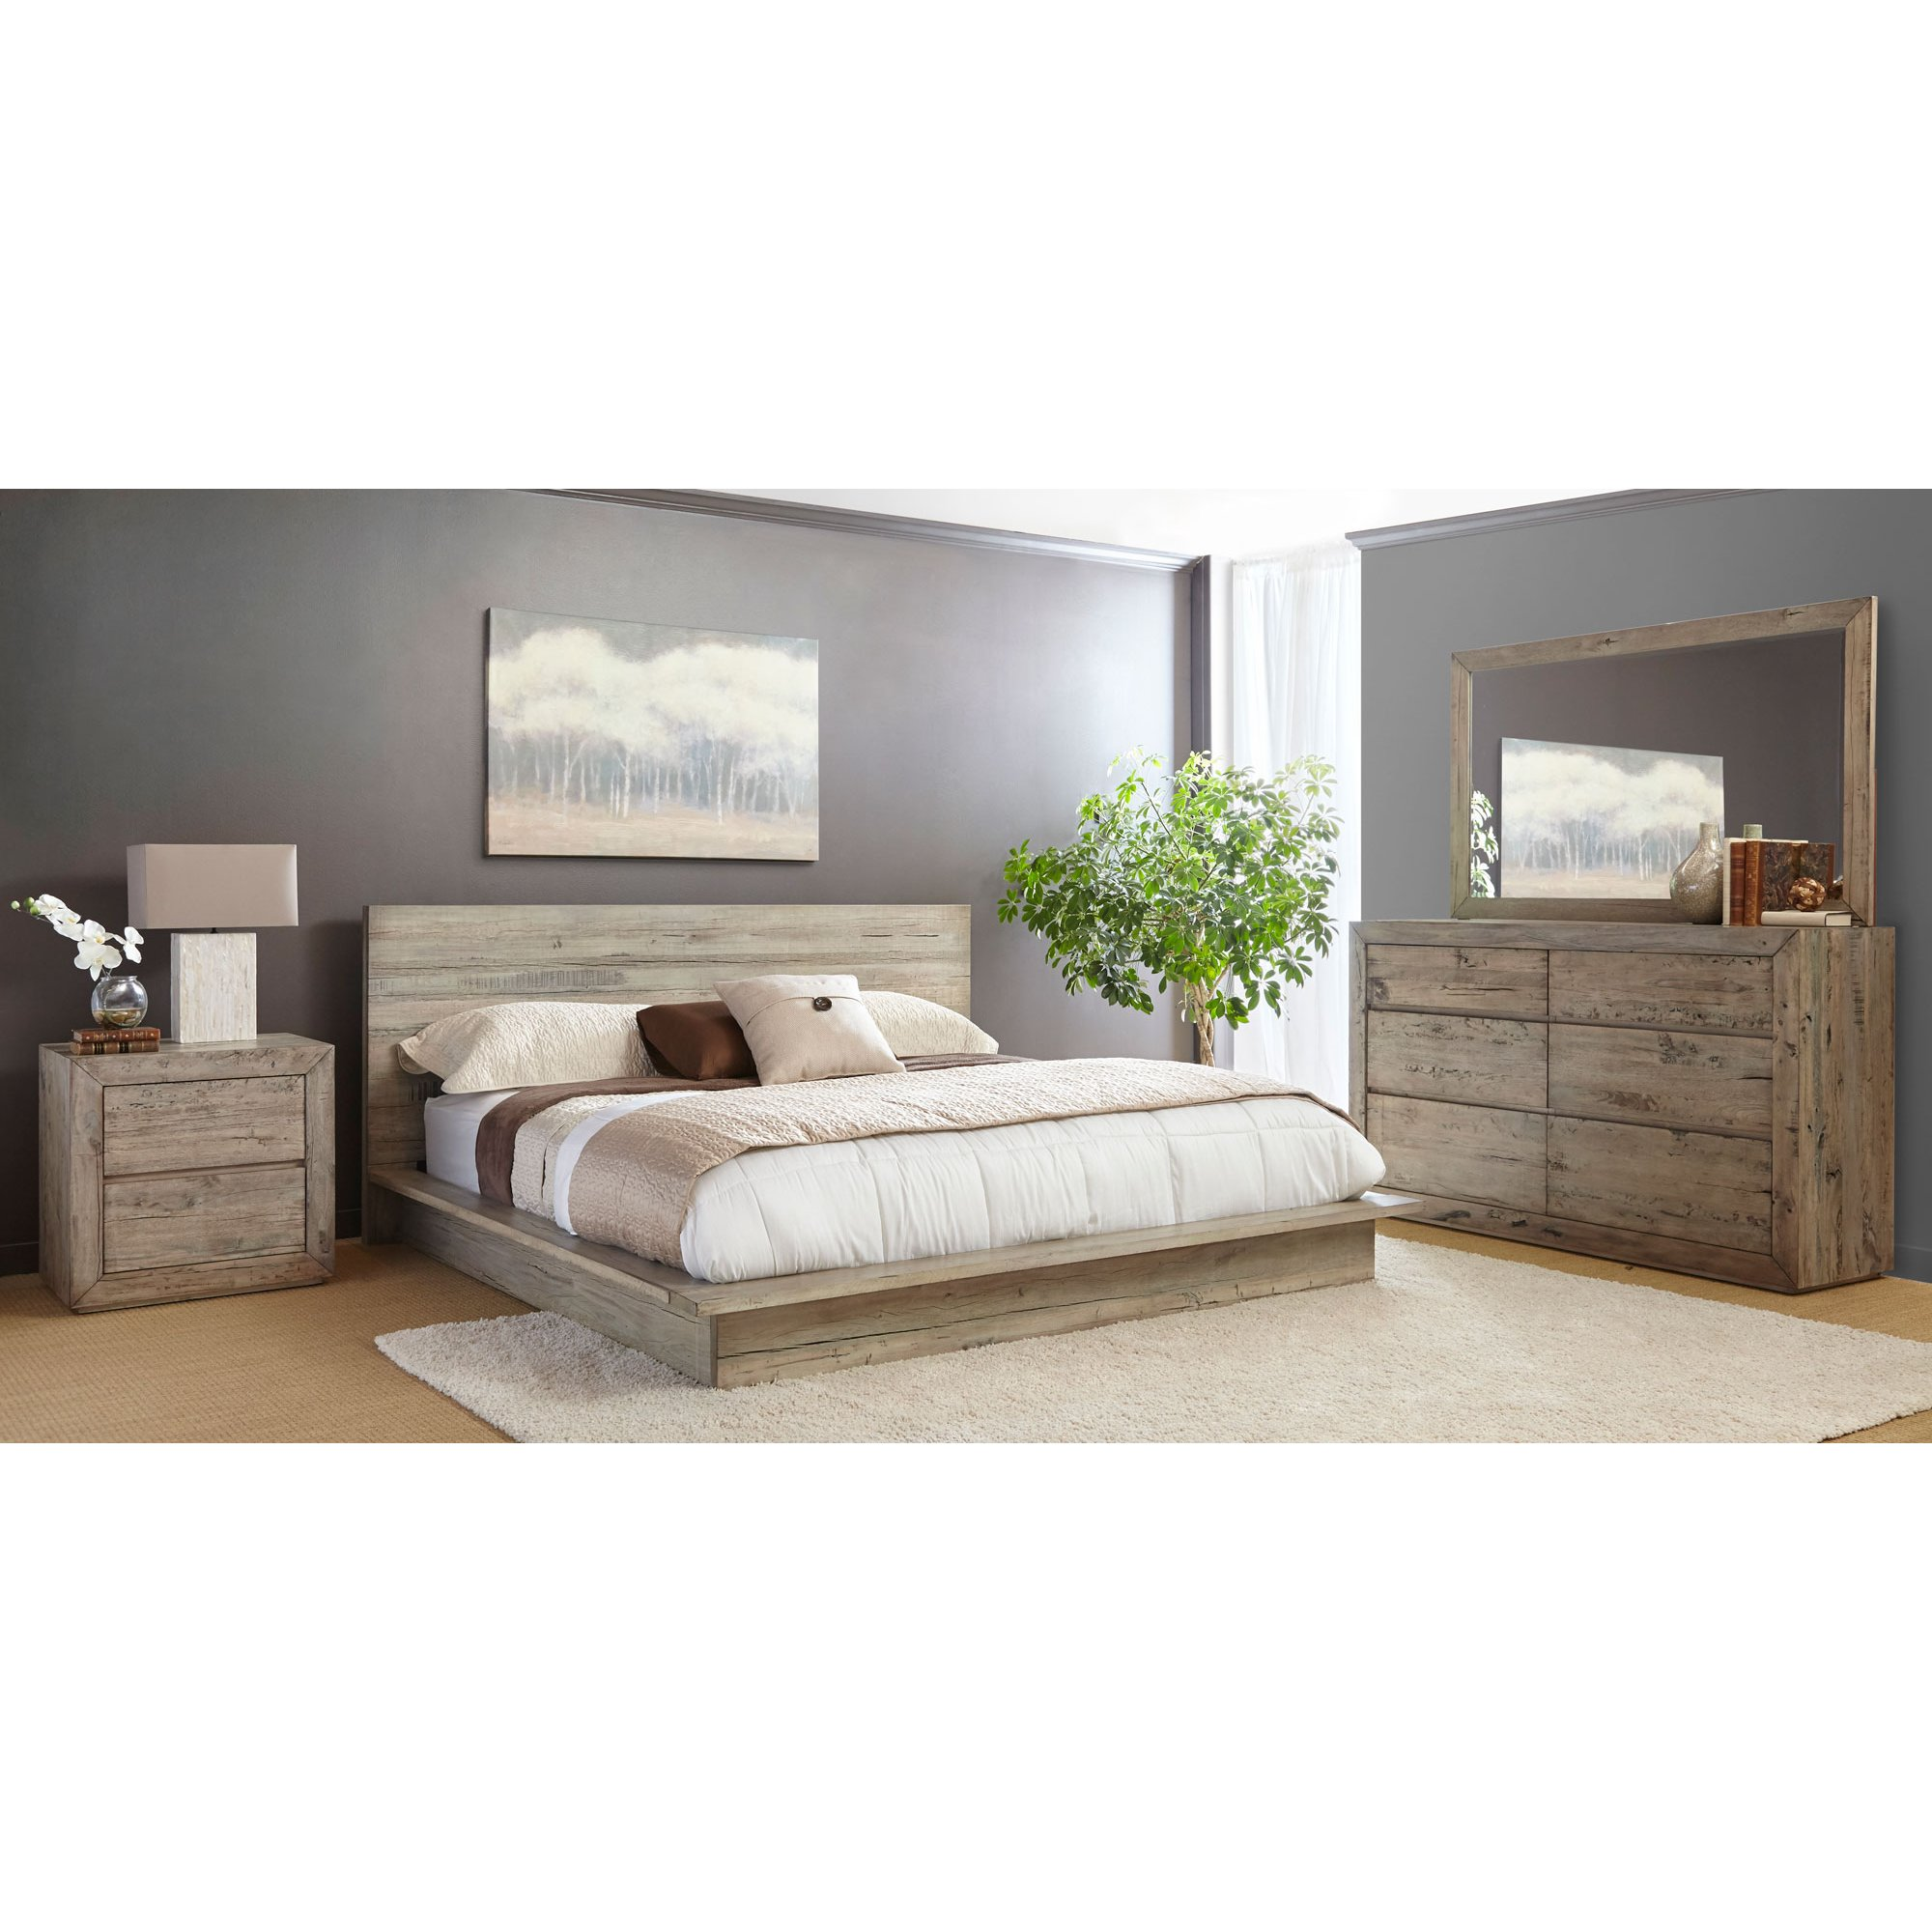 Bed Frame Sets living room list of things raleigh kitchen cabinetsraleigh